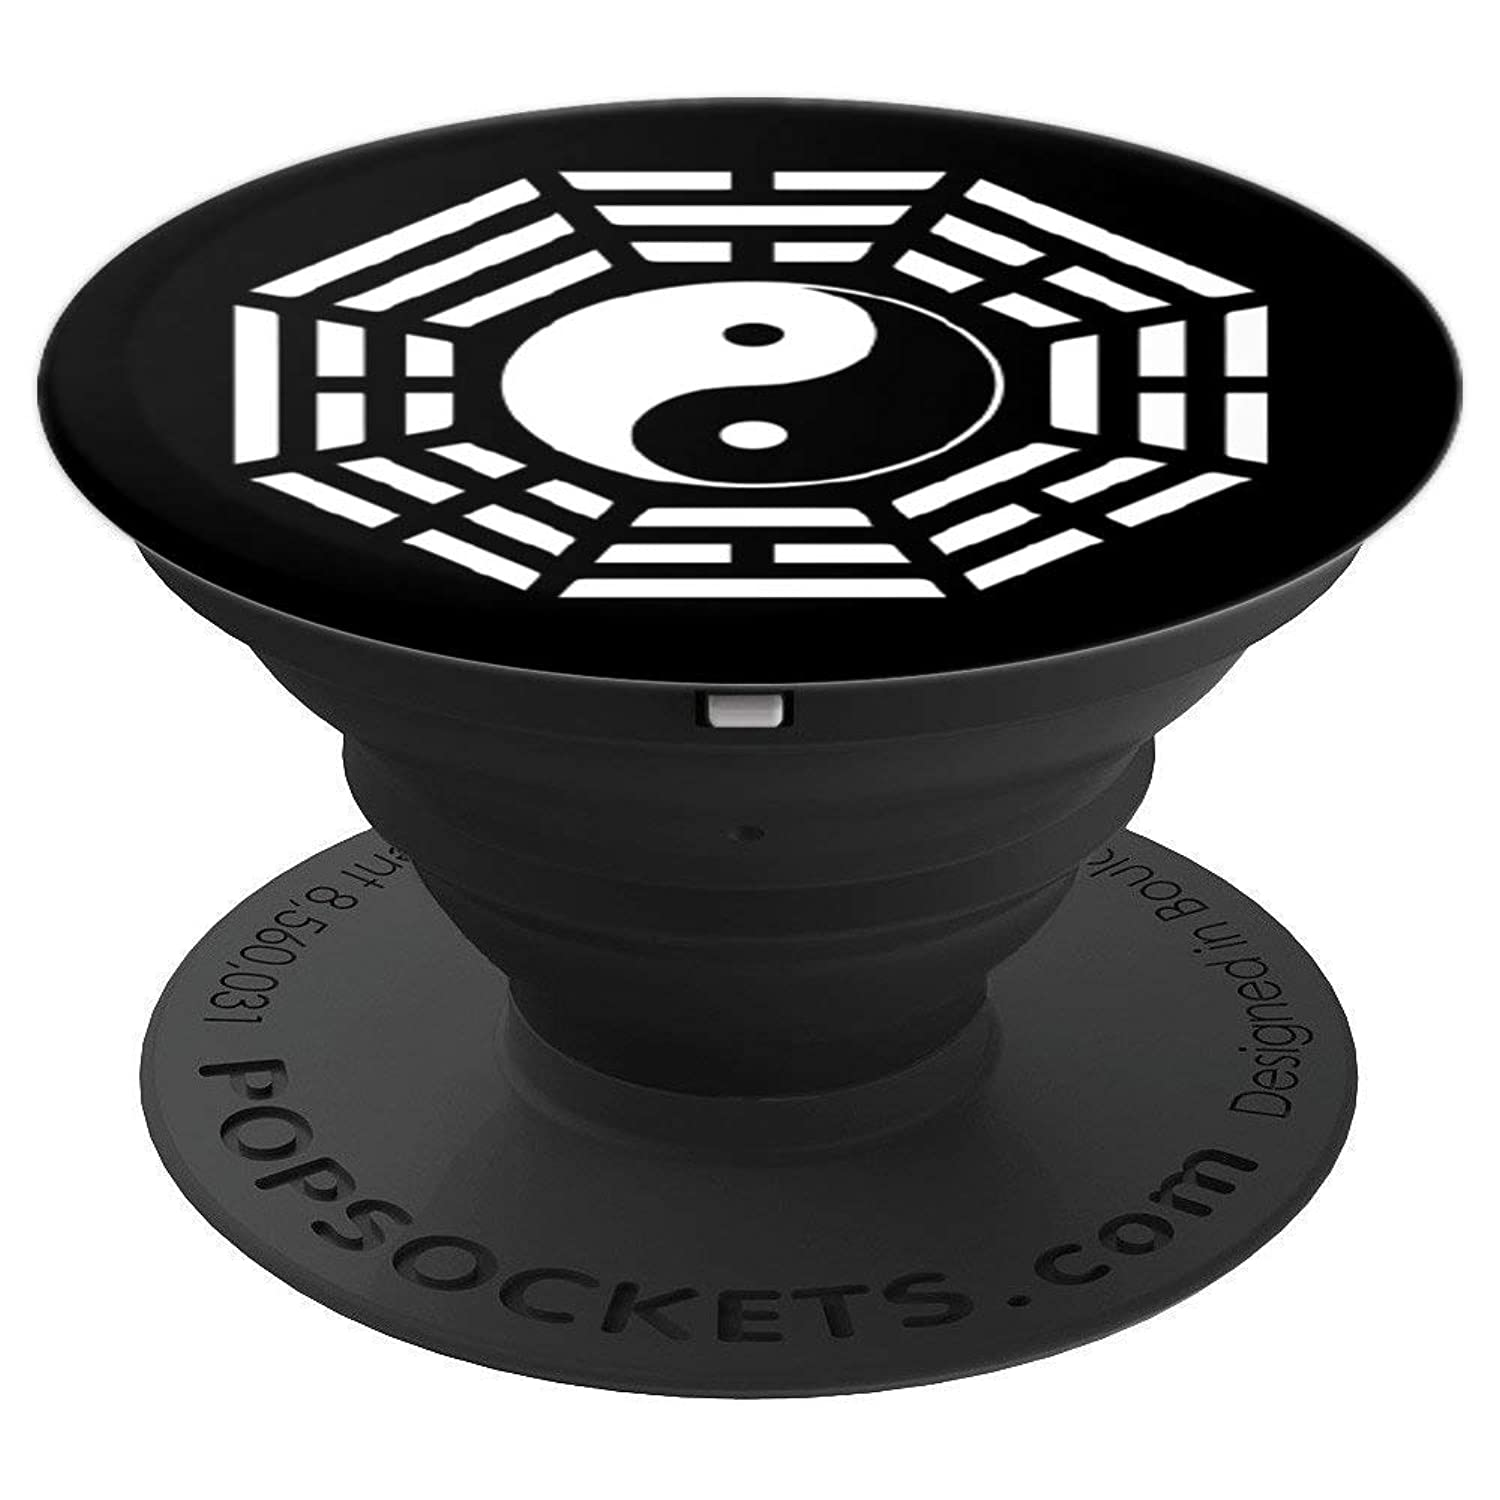 Tai Chi, Qi Gong, kung fu, Xmas gift Women and Men - PopSockets Grip and Stand for Phones and Tablets